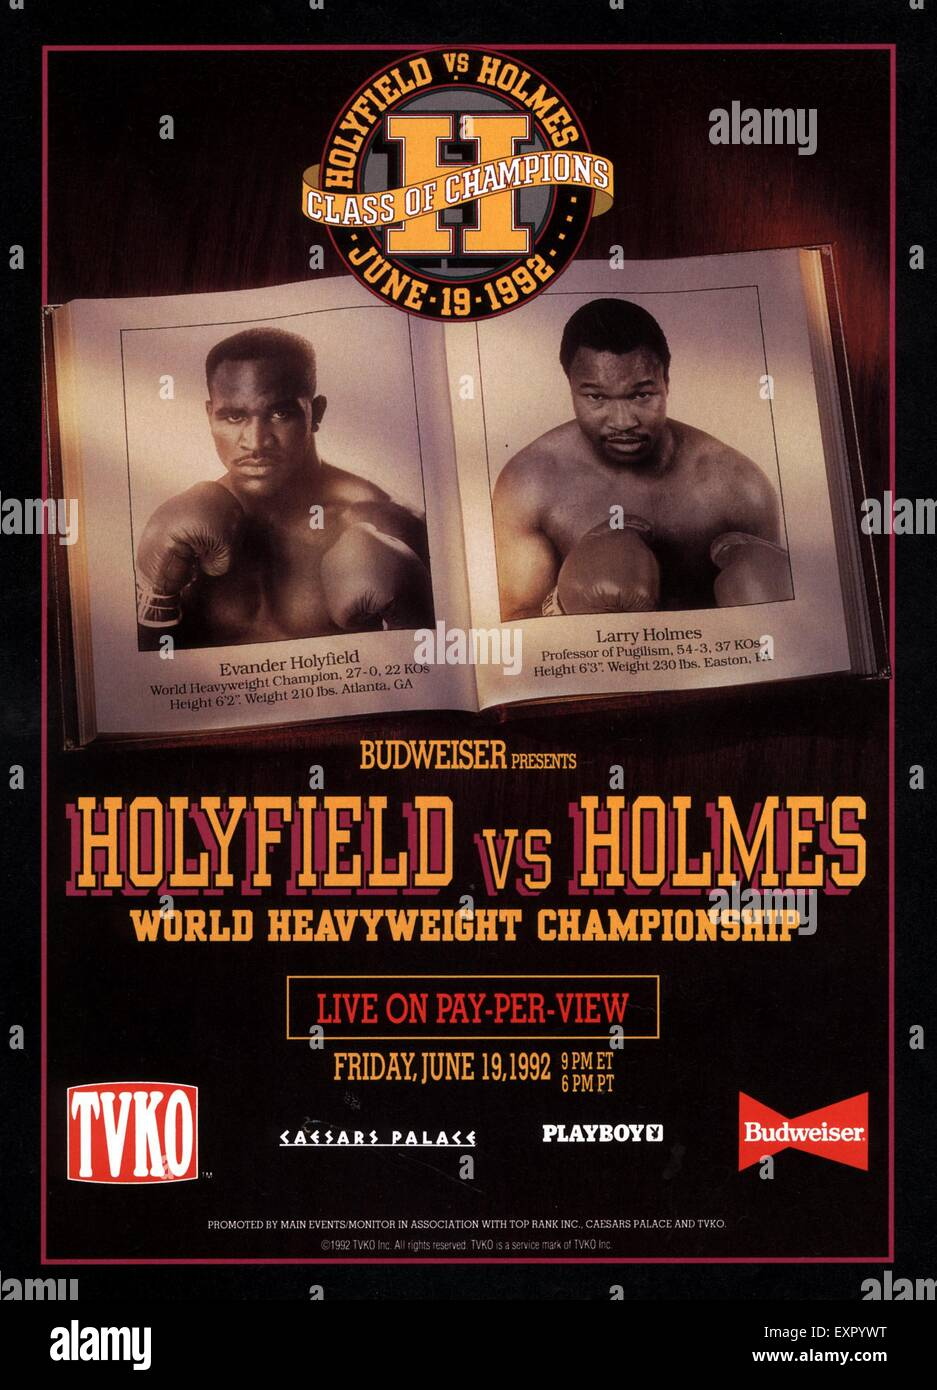 1990s USA Boxing Poster - Stock Image